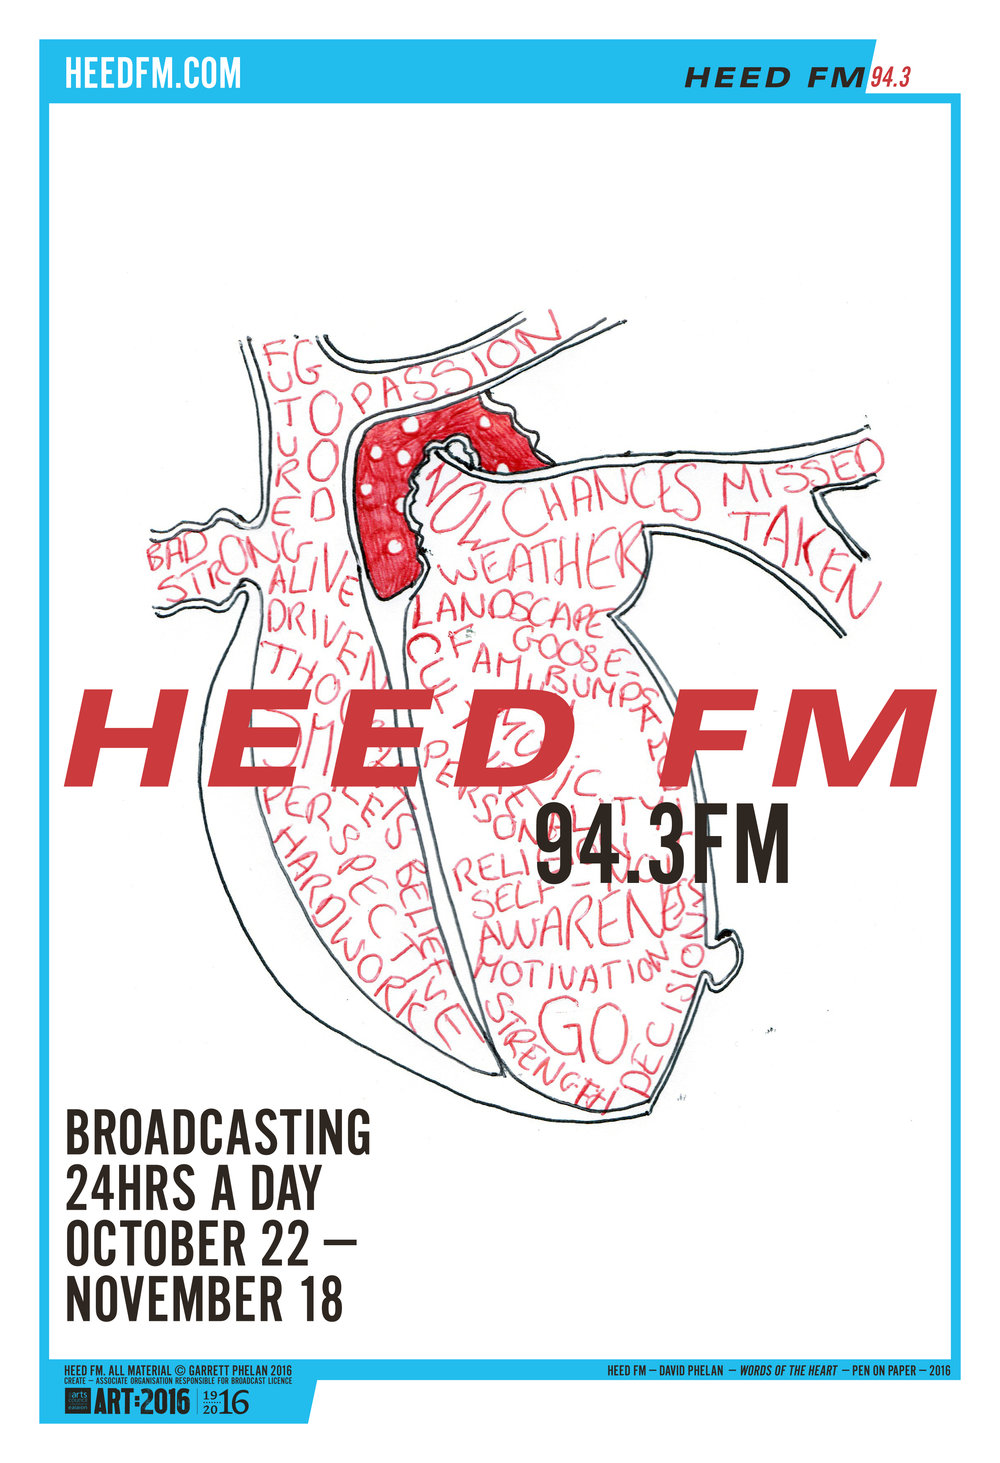 heed fm 4 sheets artwork-27.jpg